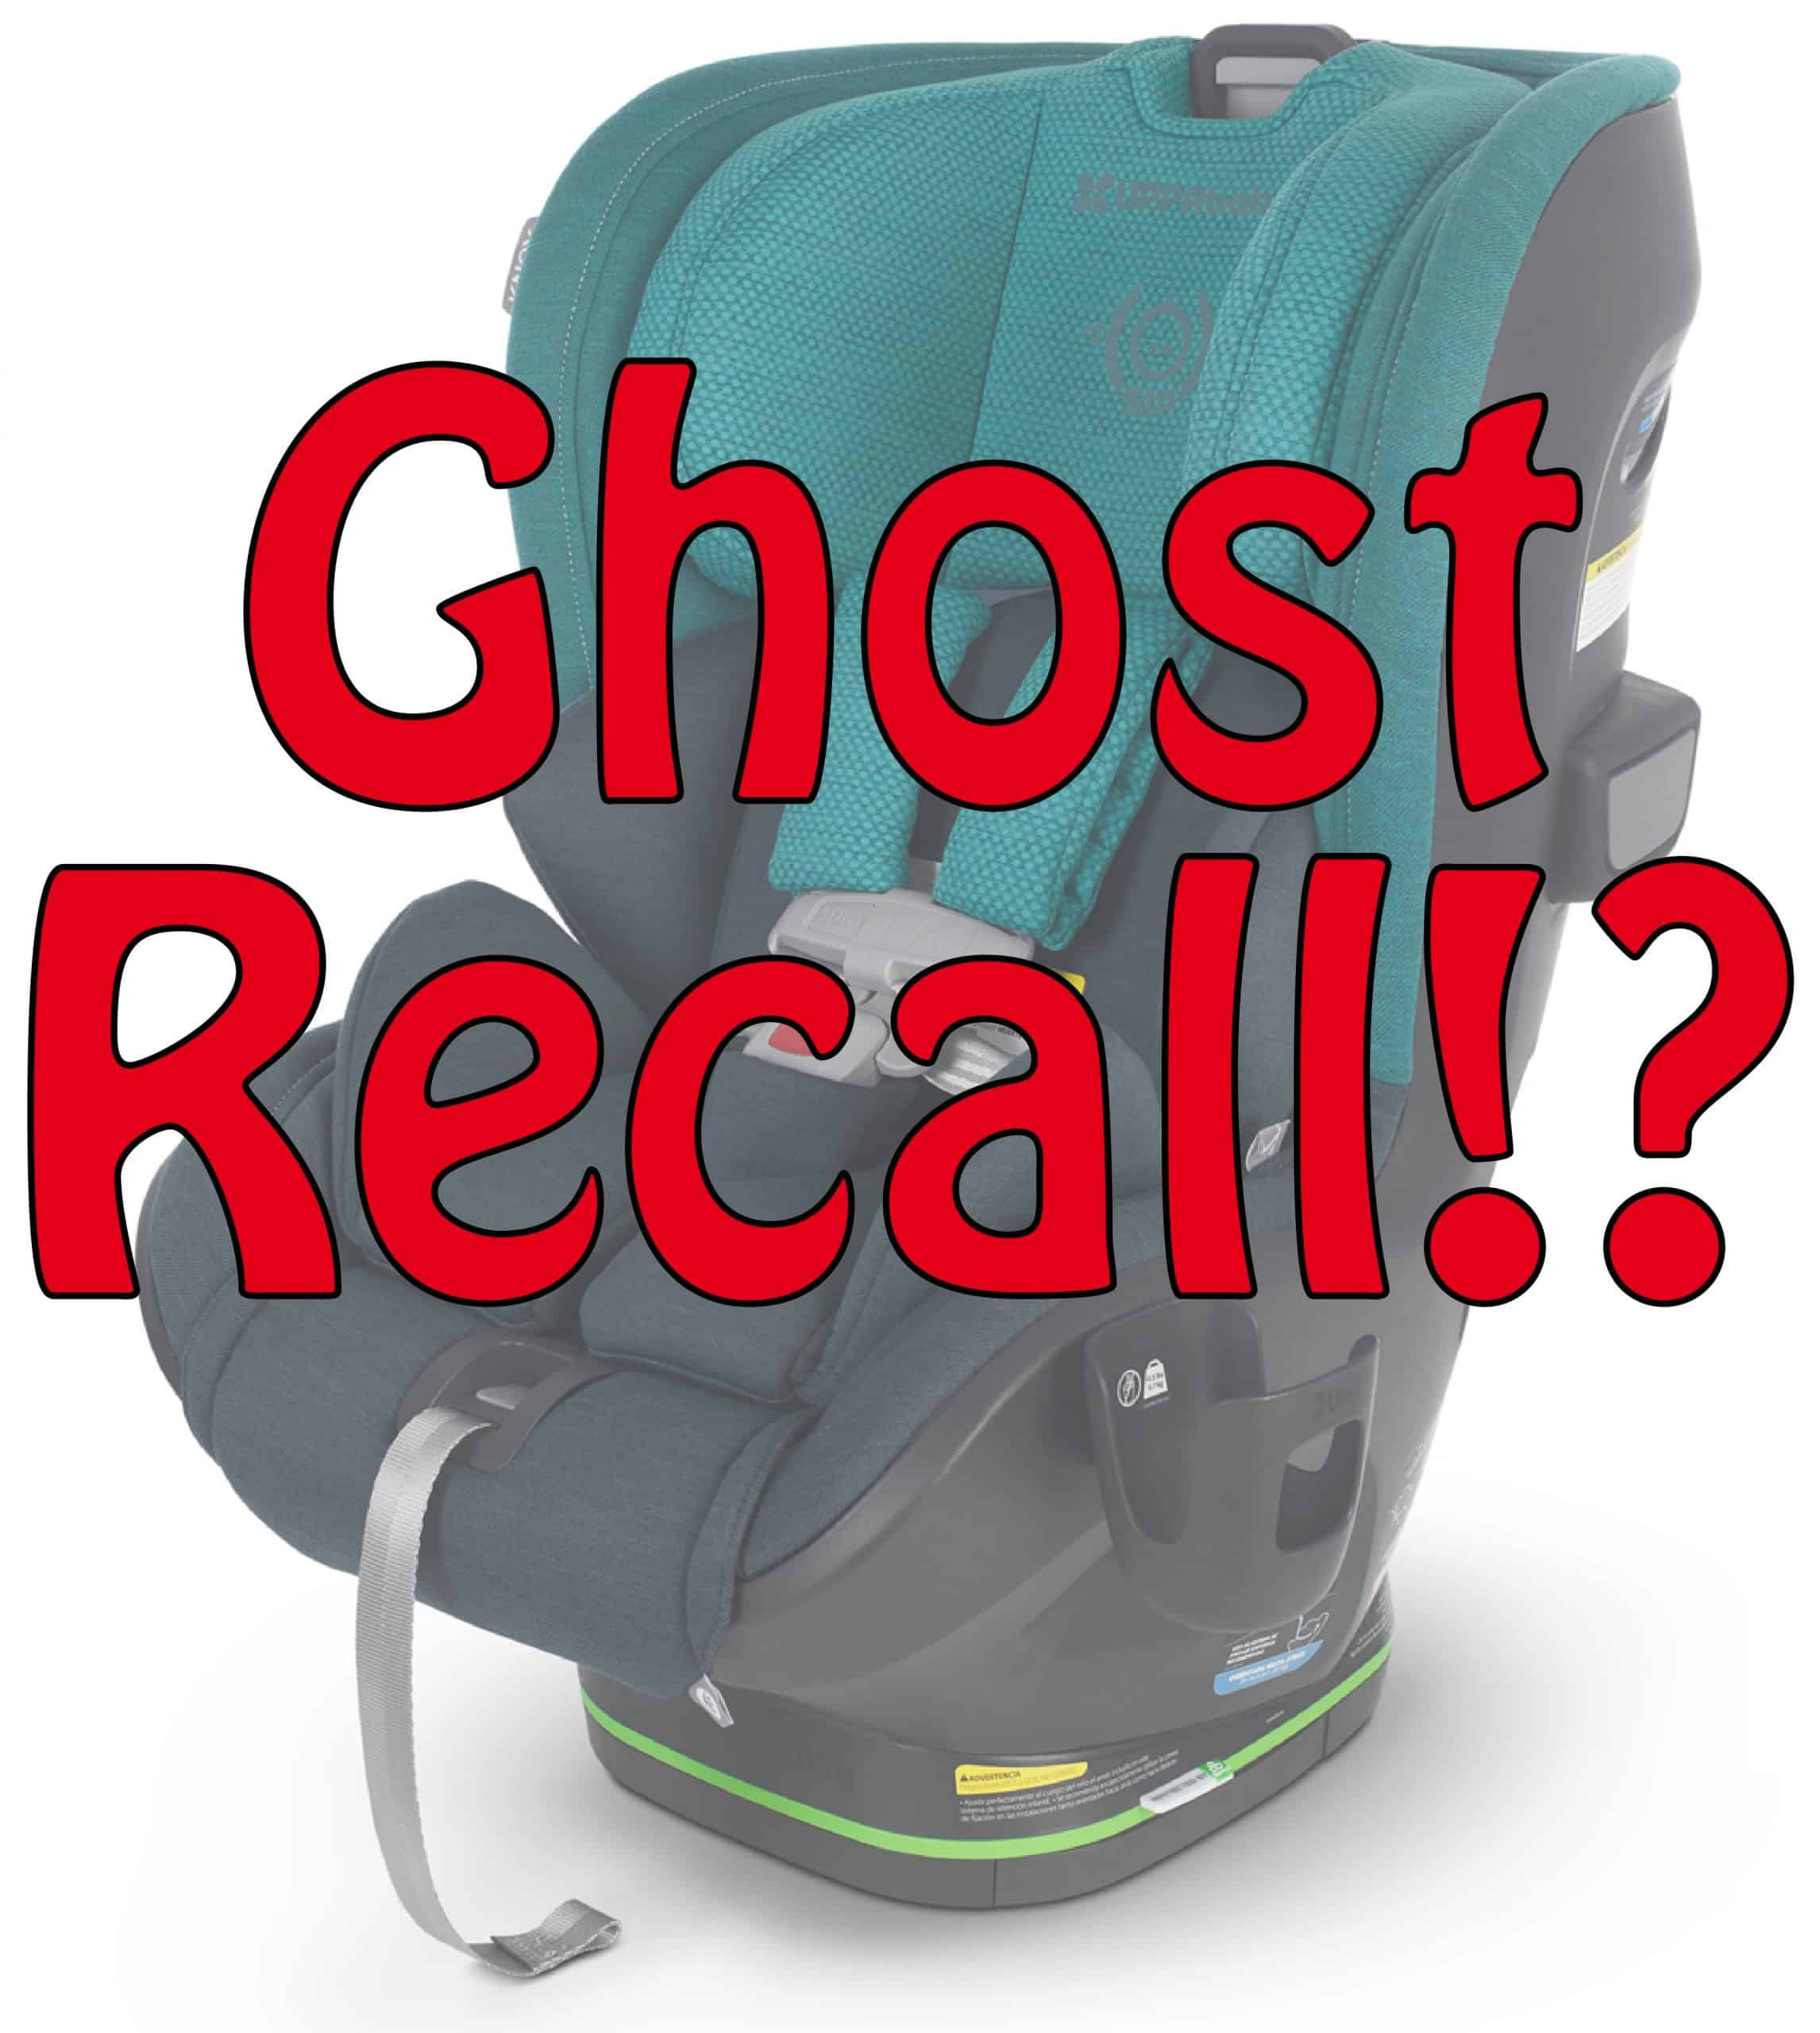 Ghost Recalls: UPPAbaby's Semi-Secret Knox Car Seat Recall Sparks Confusion, Concern